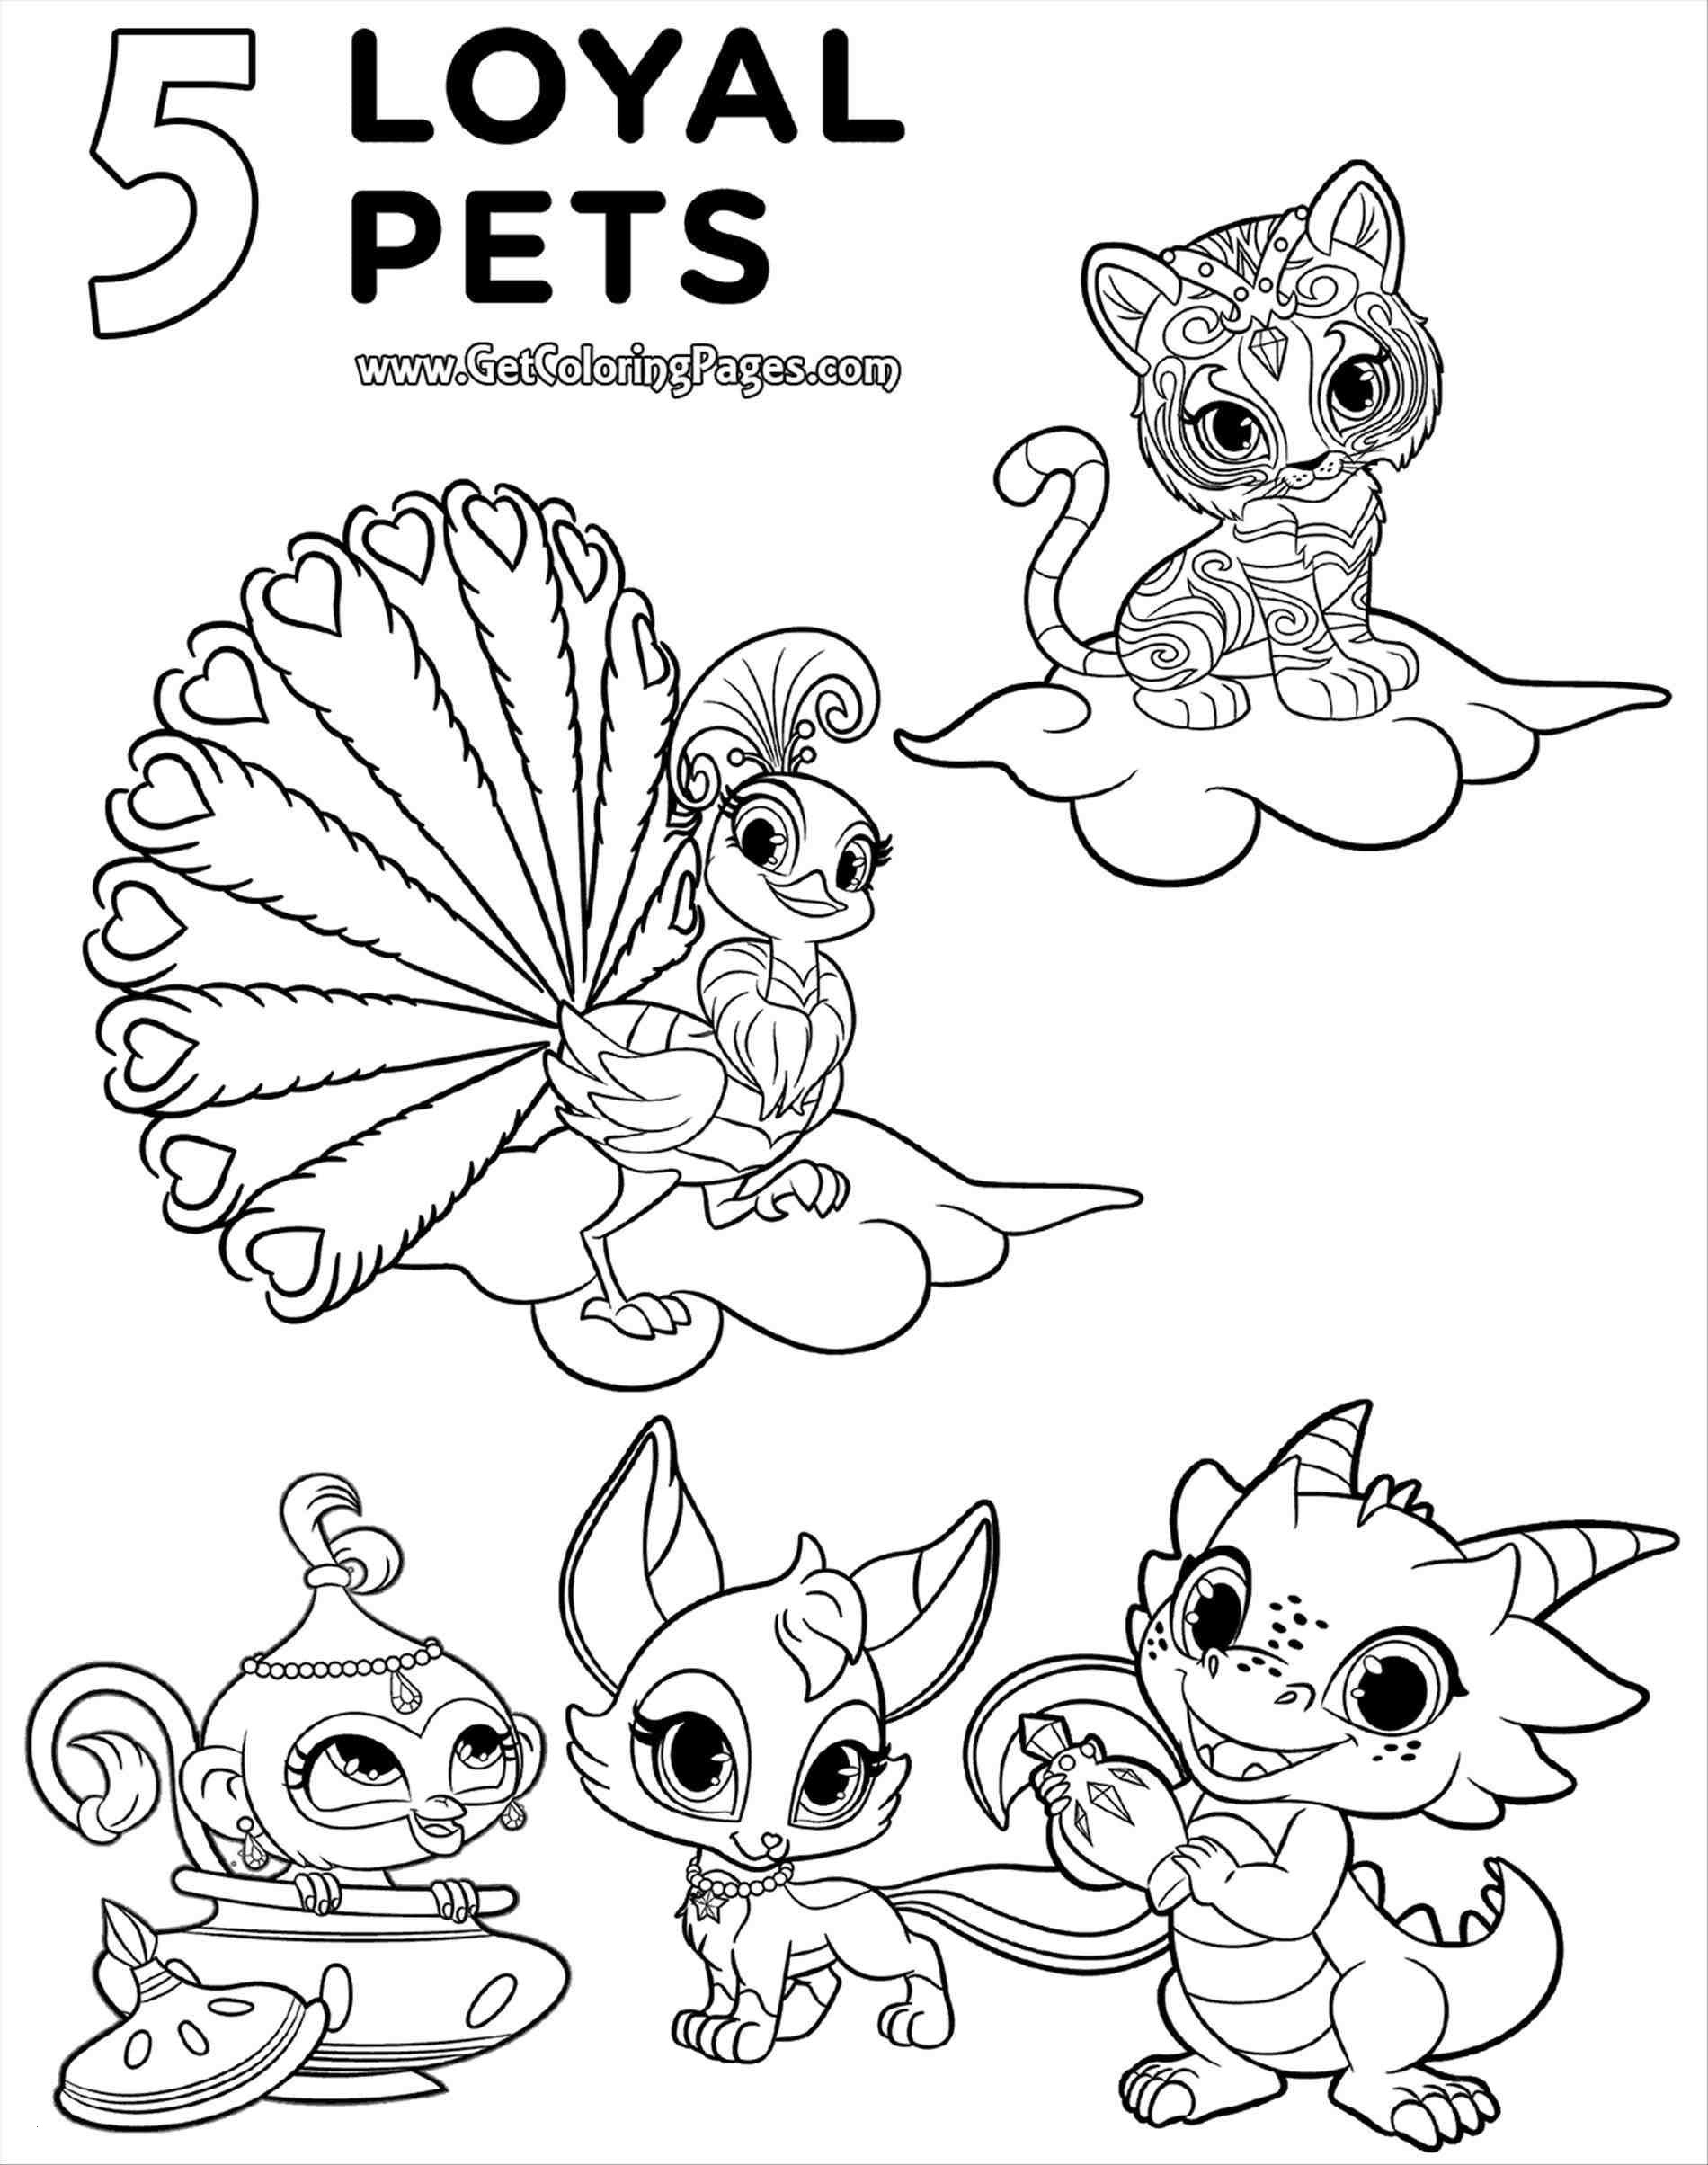 Shimmer And Shine Coloring Pages To Print 23 Shimmer And Shine Coloring Pages Collection Coloring Sheets